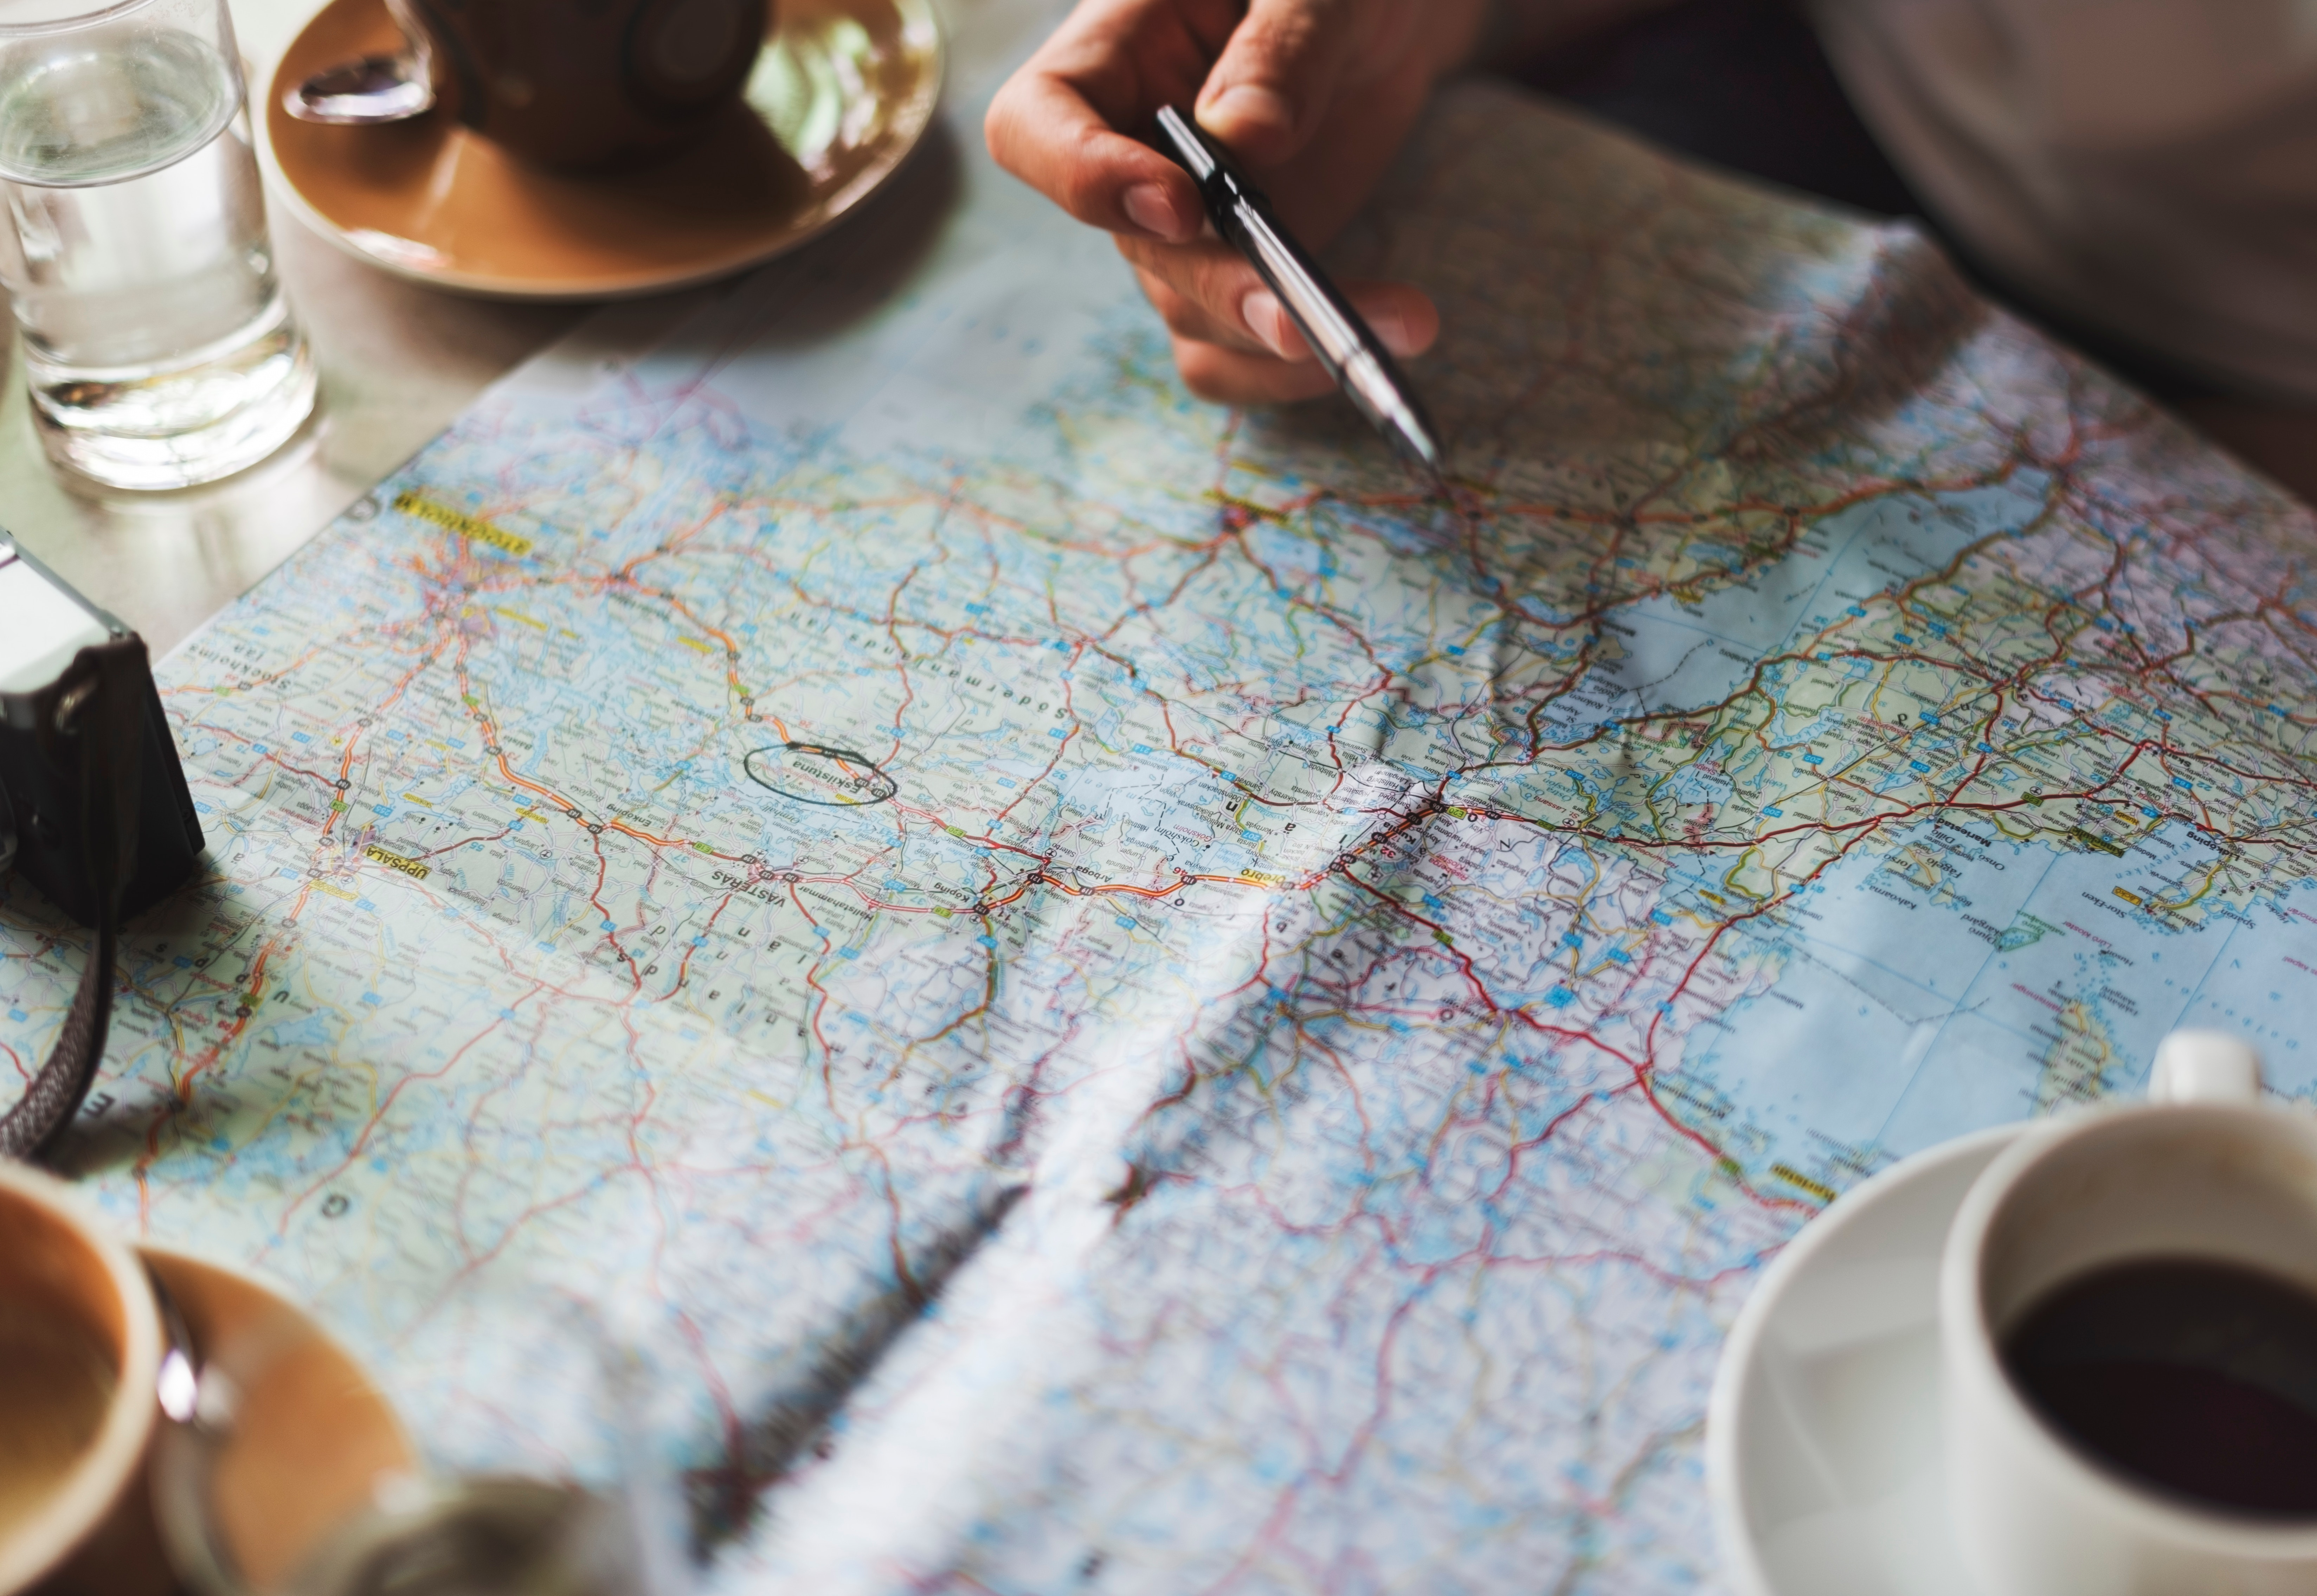 The path to mapping user journeys